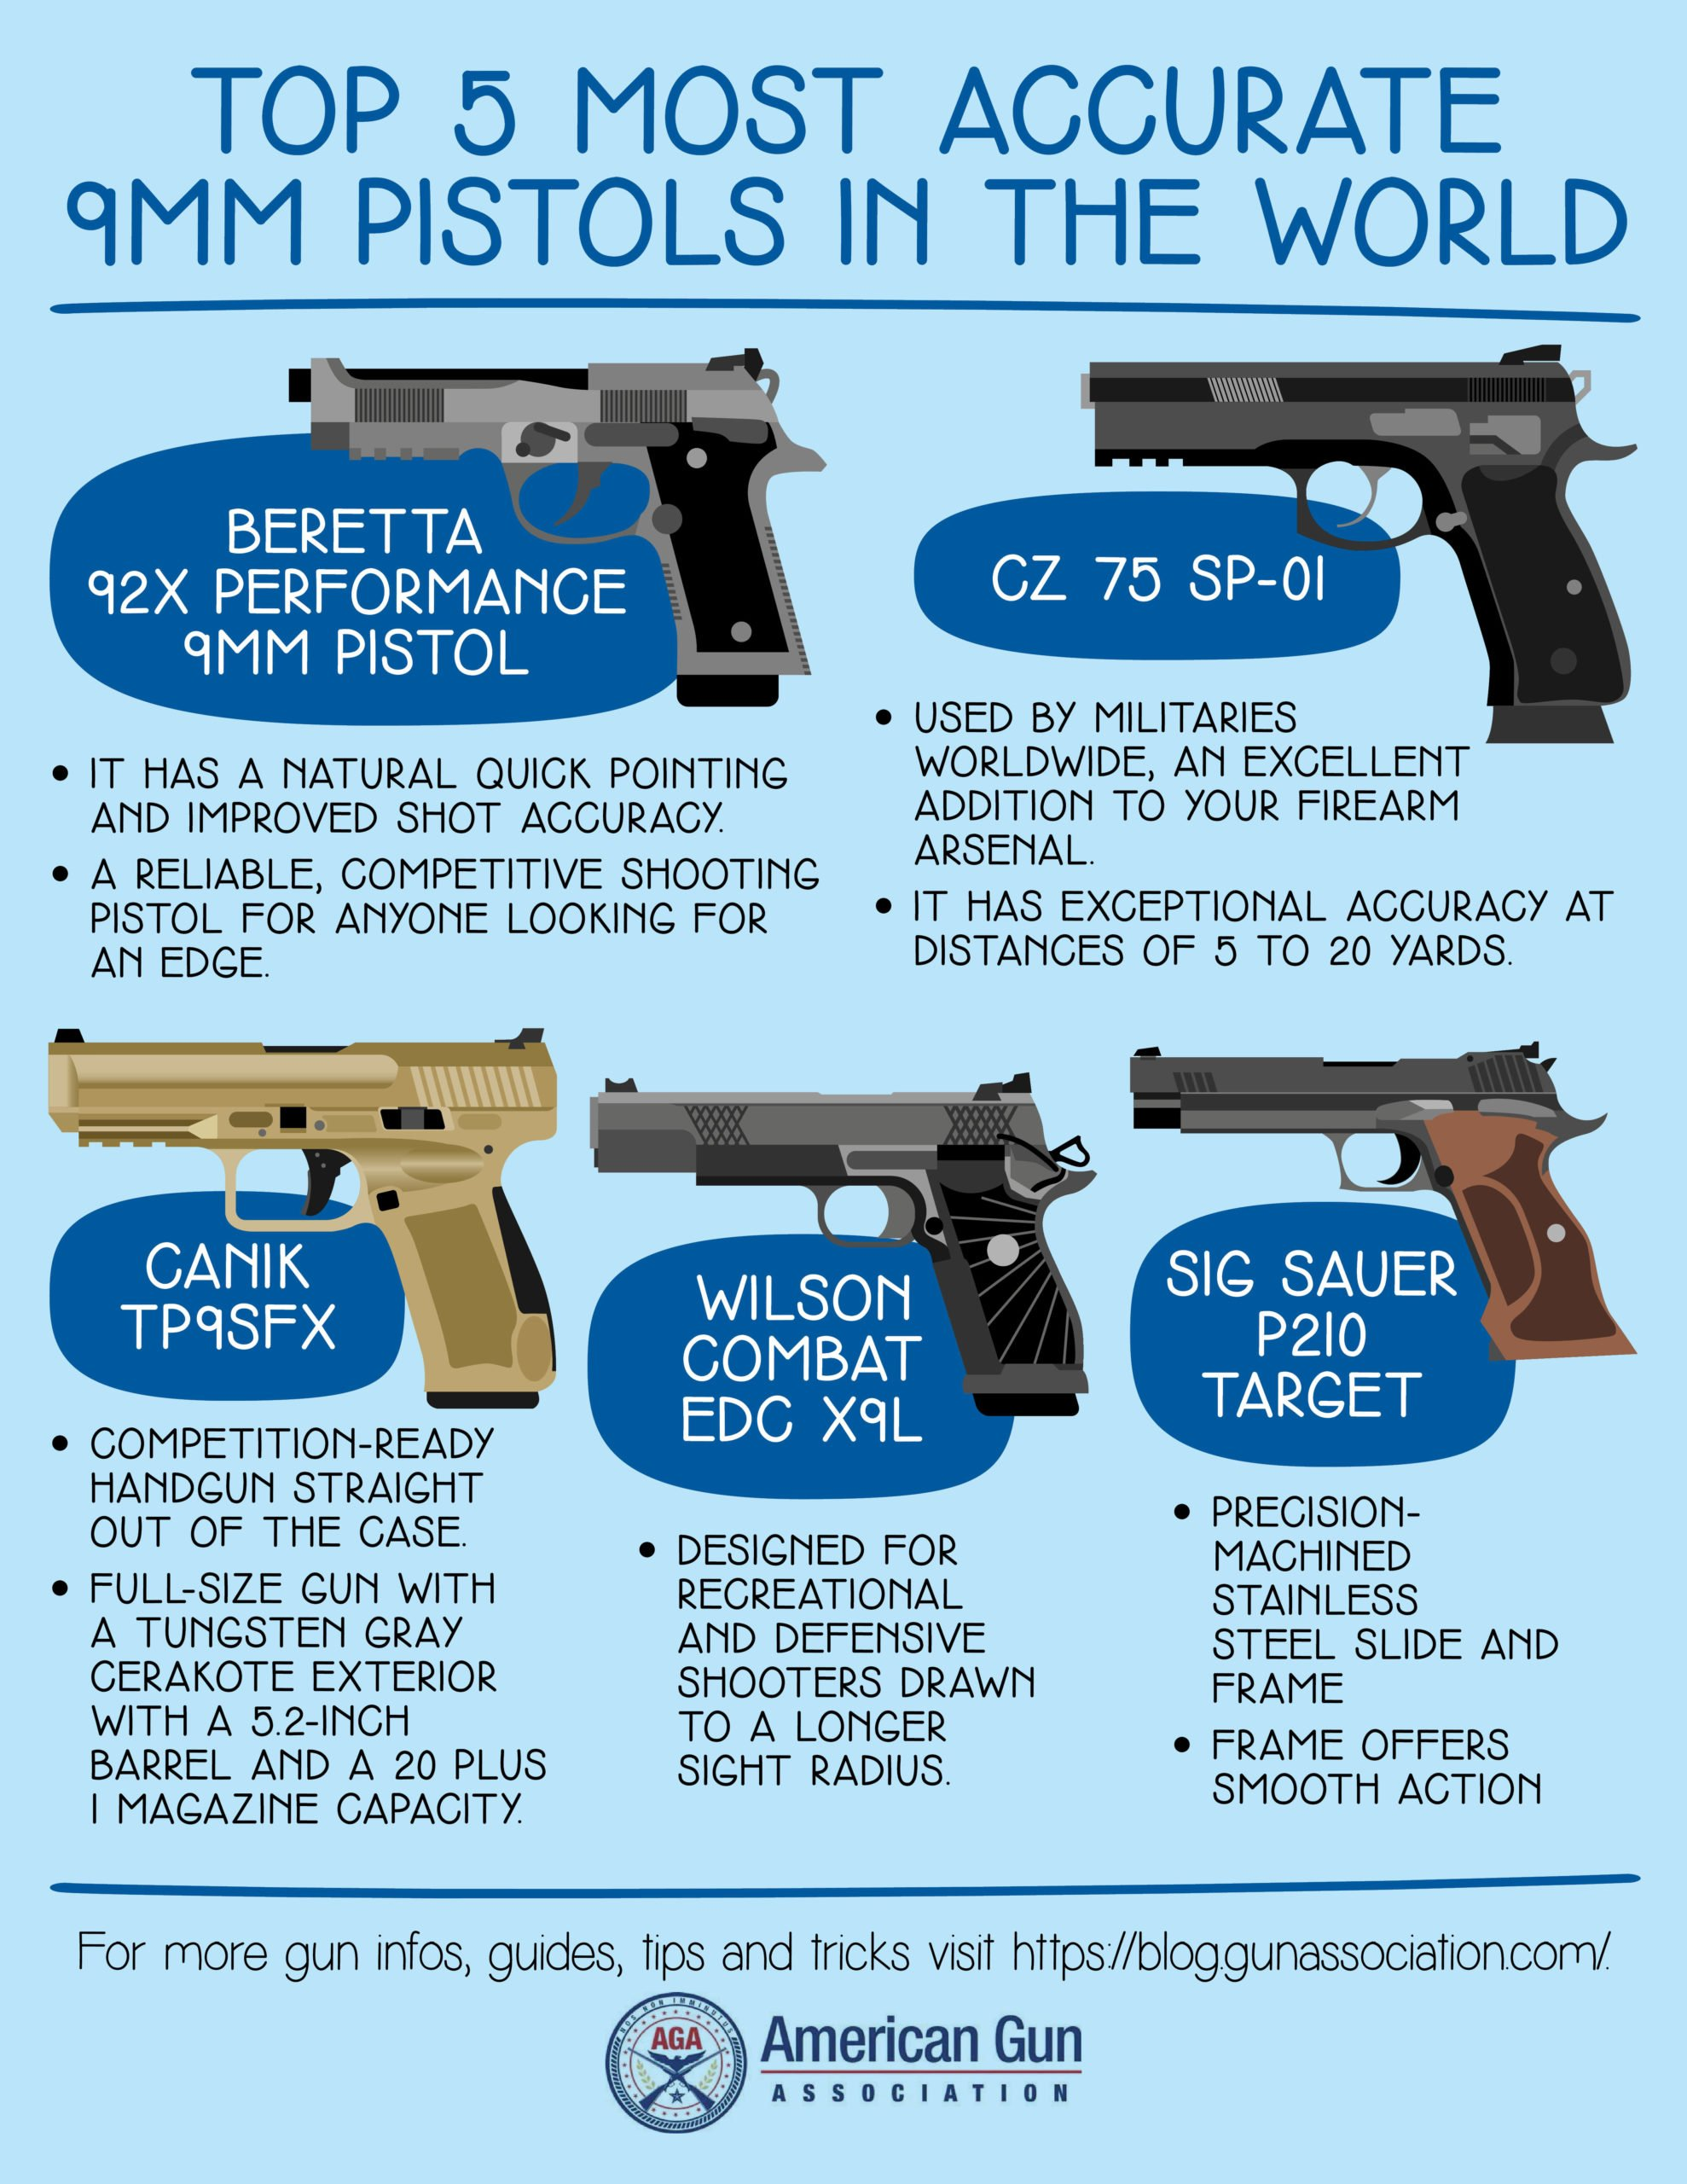 Top 5 Most Accurate 9mm Pistols In The World edit